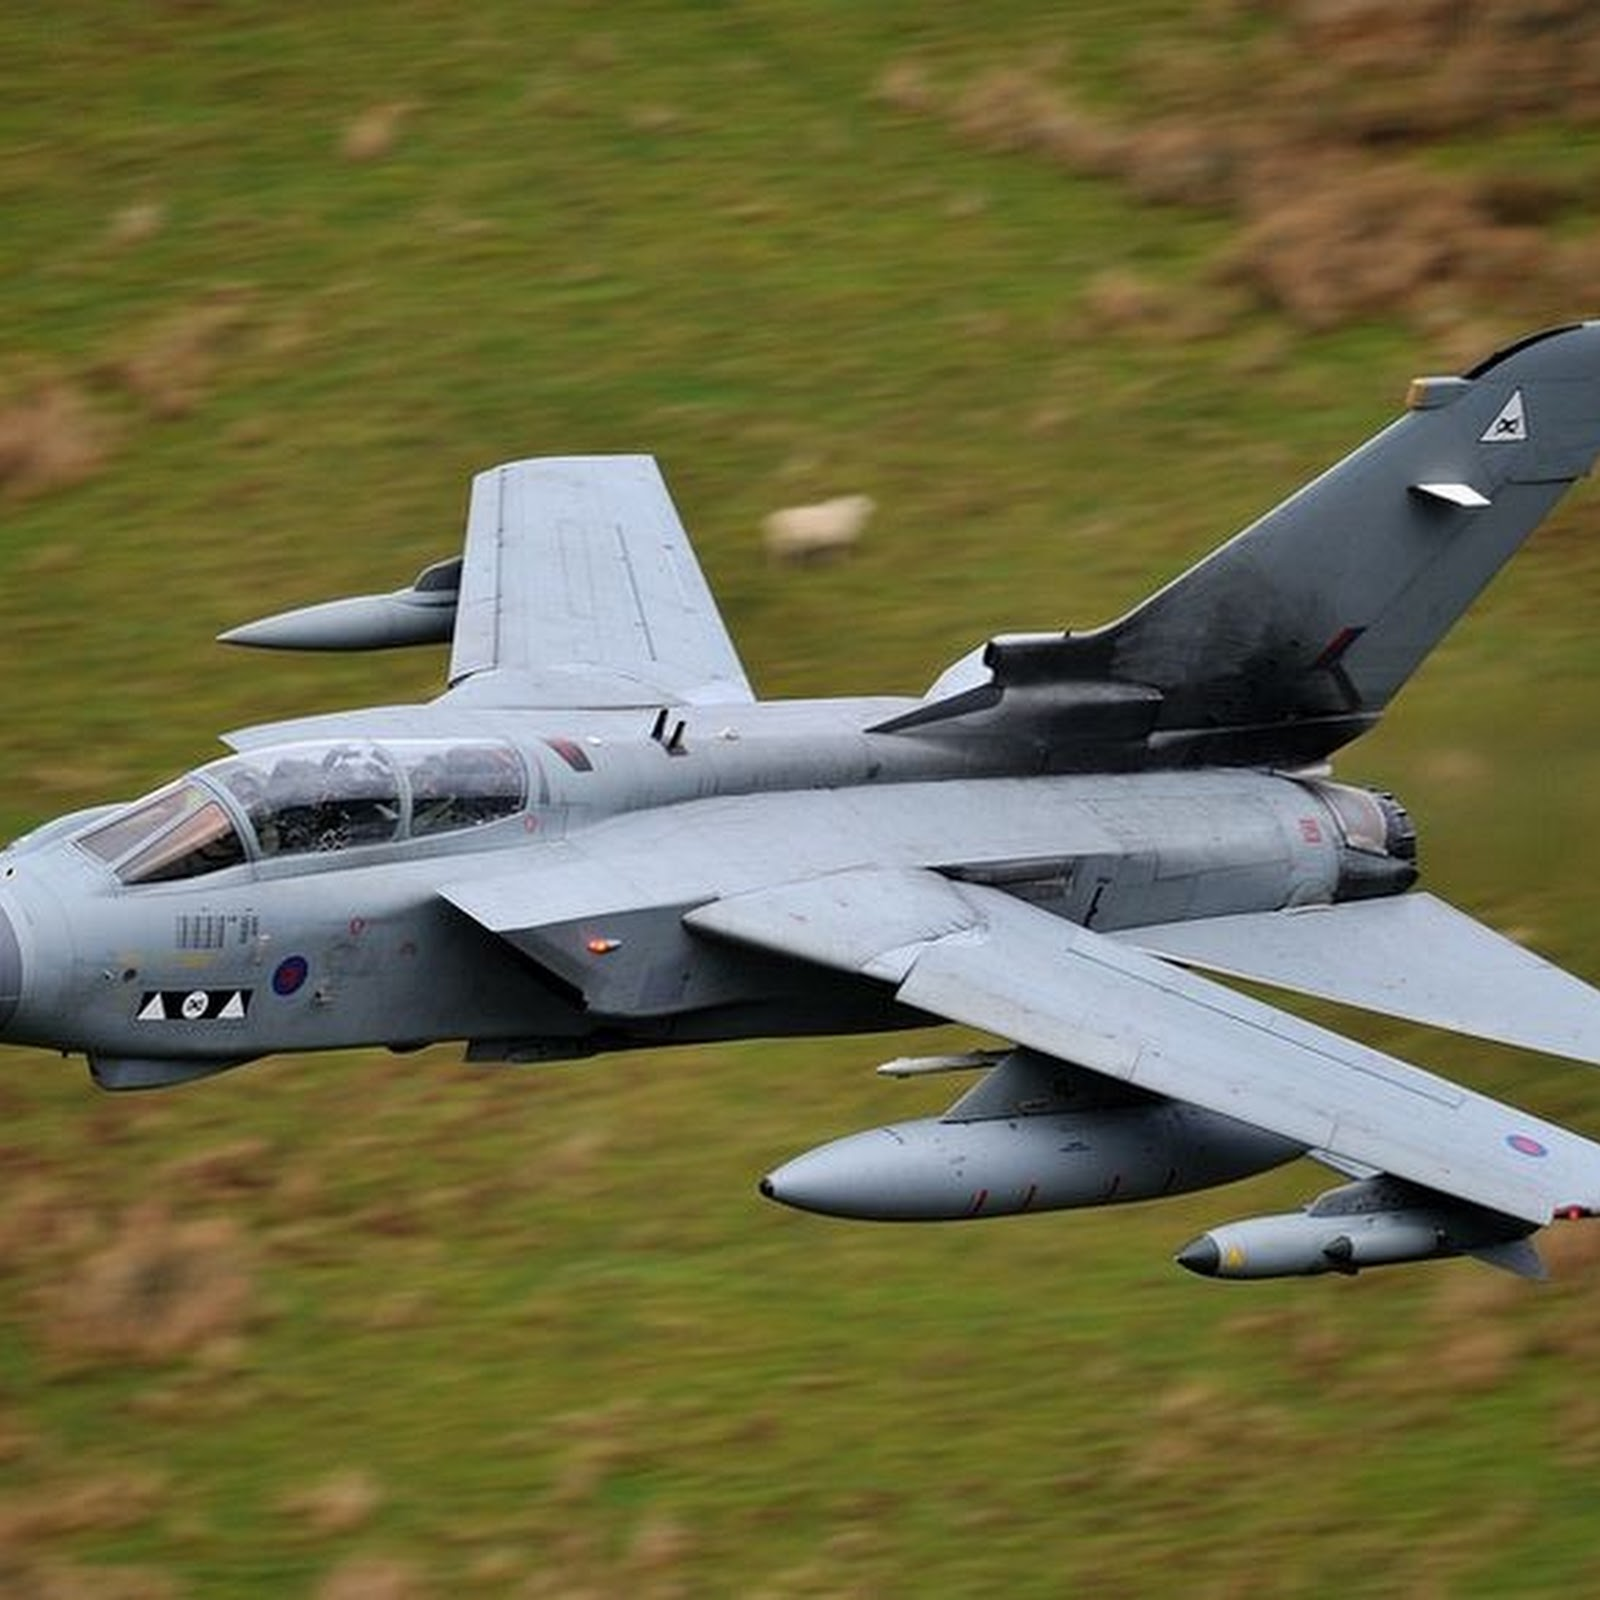 Mach Loop: The Valley of Fighter Jets